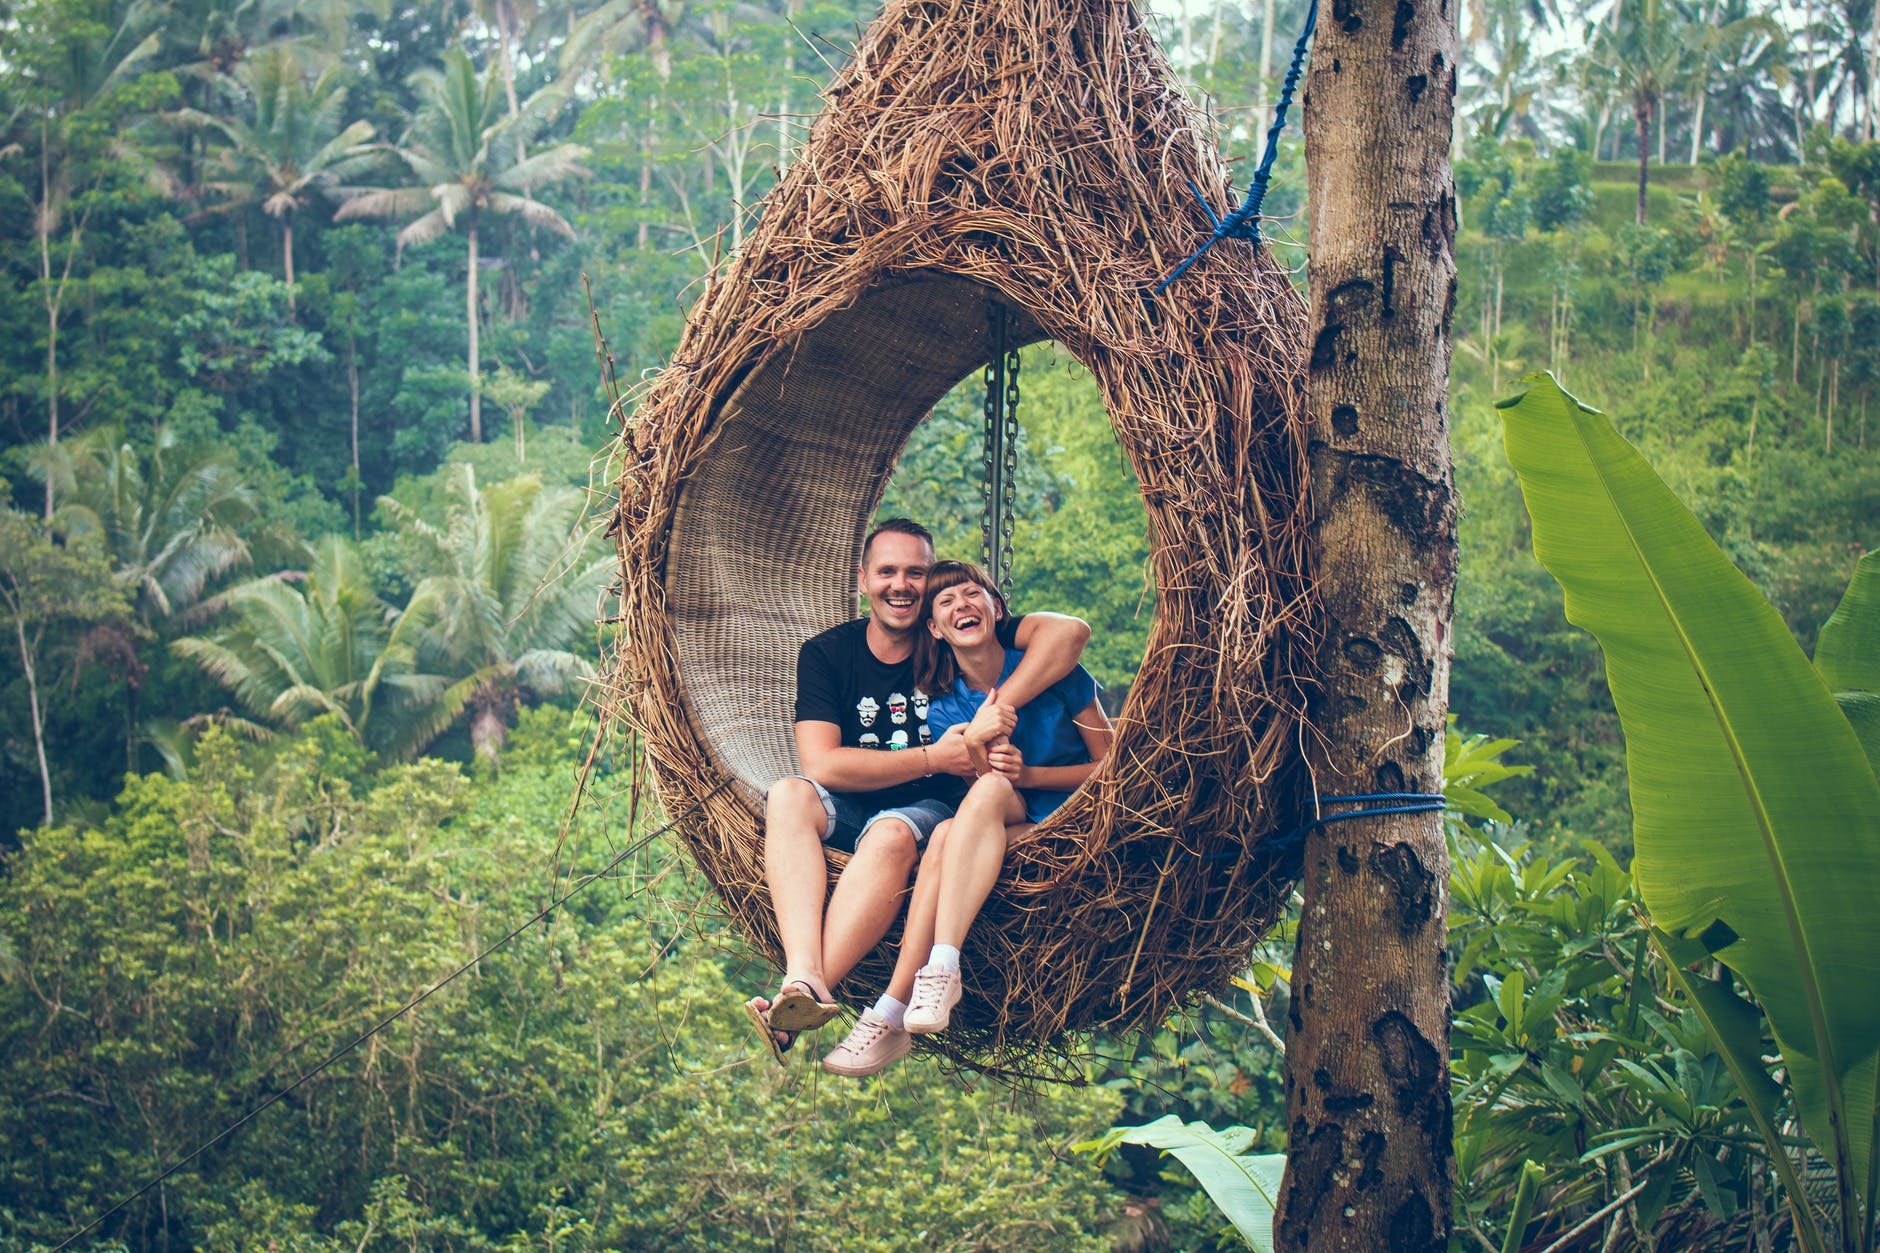 boy-and-girl-in-a-forest-trees-green-relax